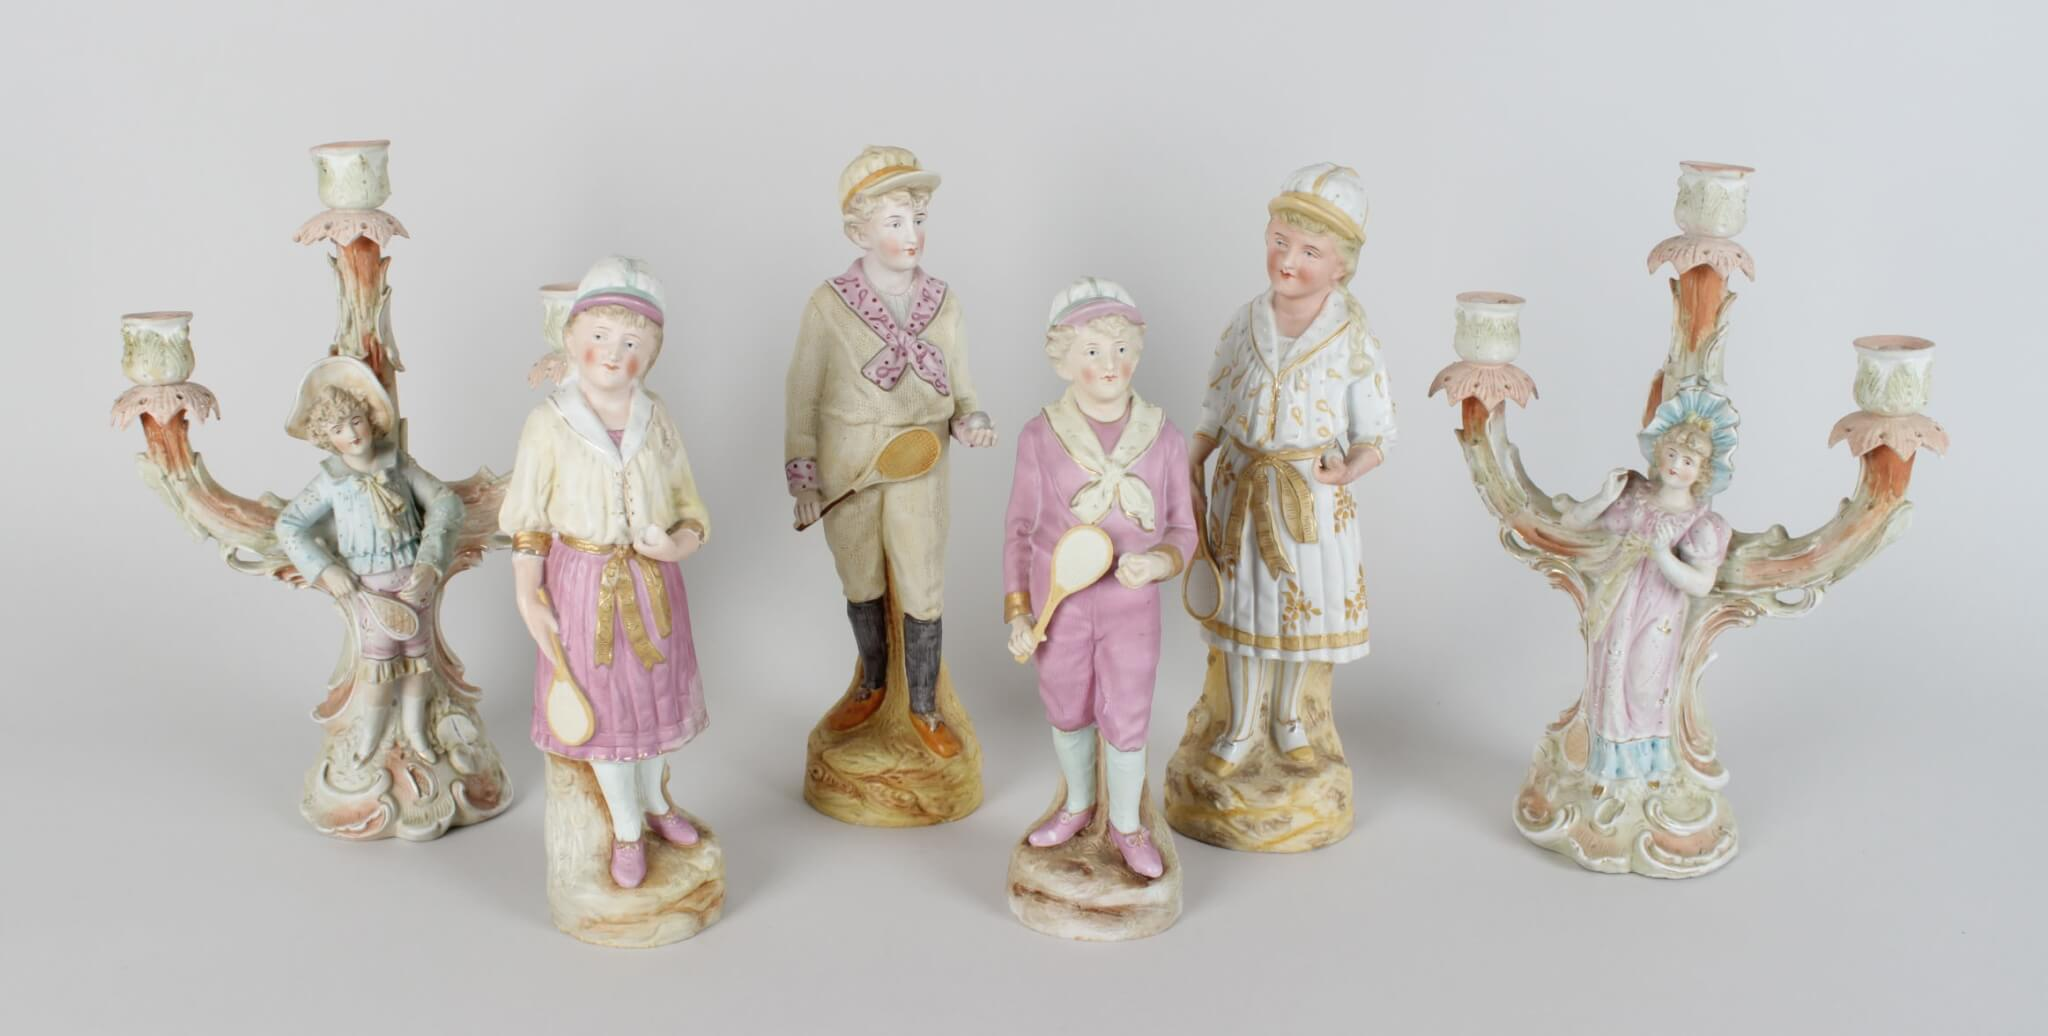 1880's Heubach Tennis Statues (4) and Matching Period Tennis-Themed Candelabra (2)40630_01